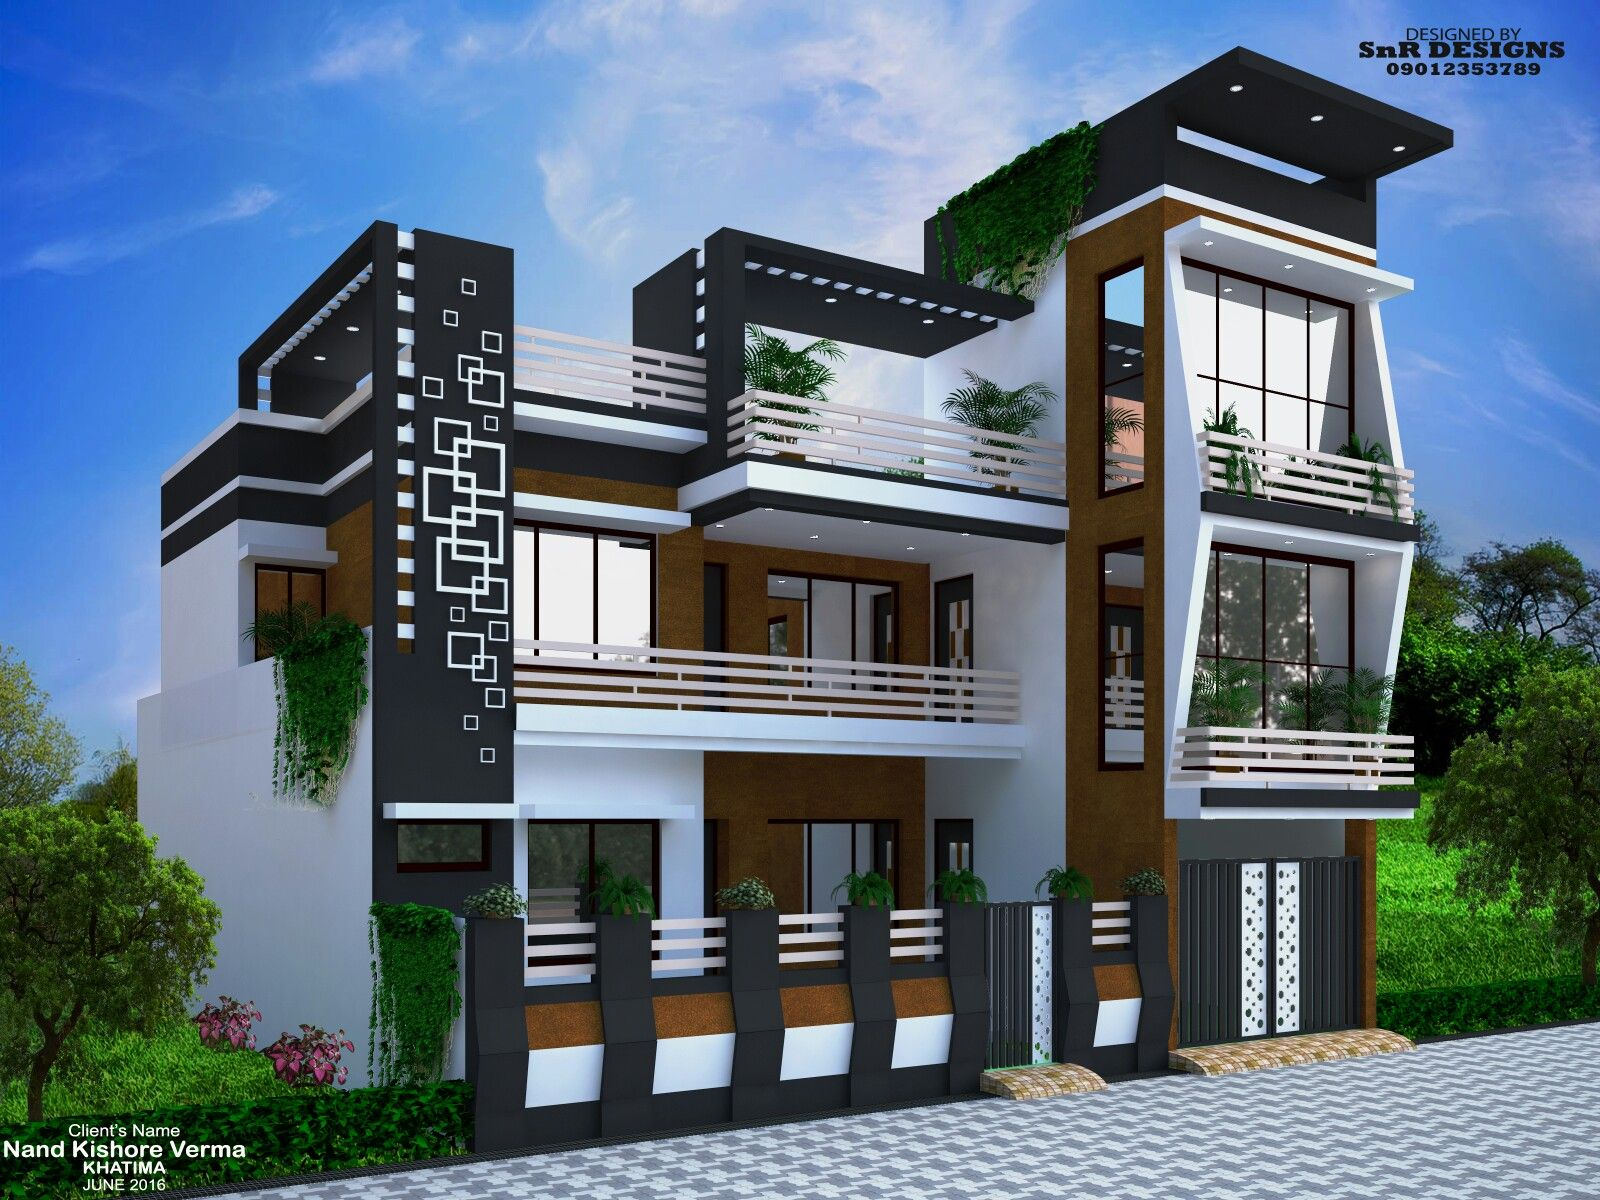 House elevation front designs room planning modern design compound wall also nice on rh pinterest